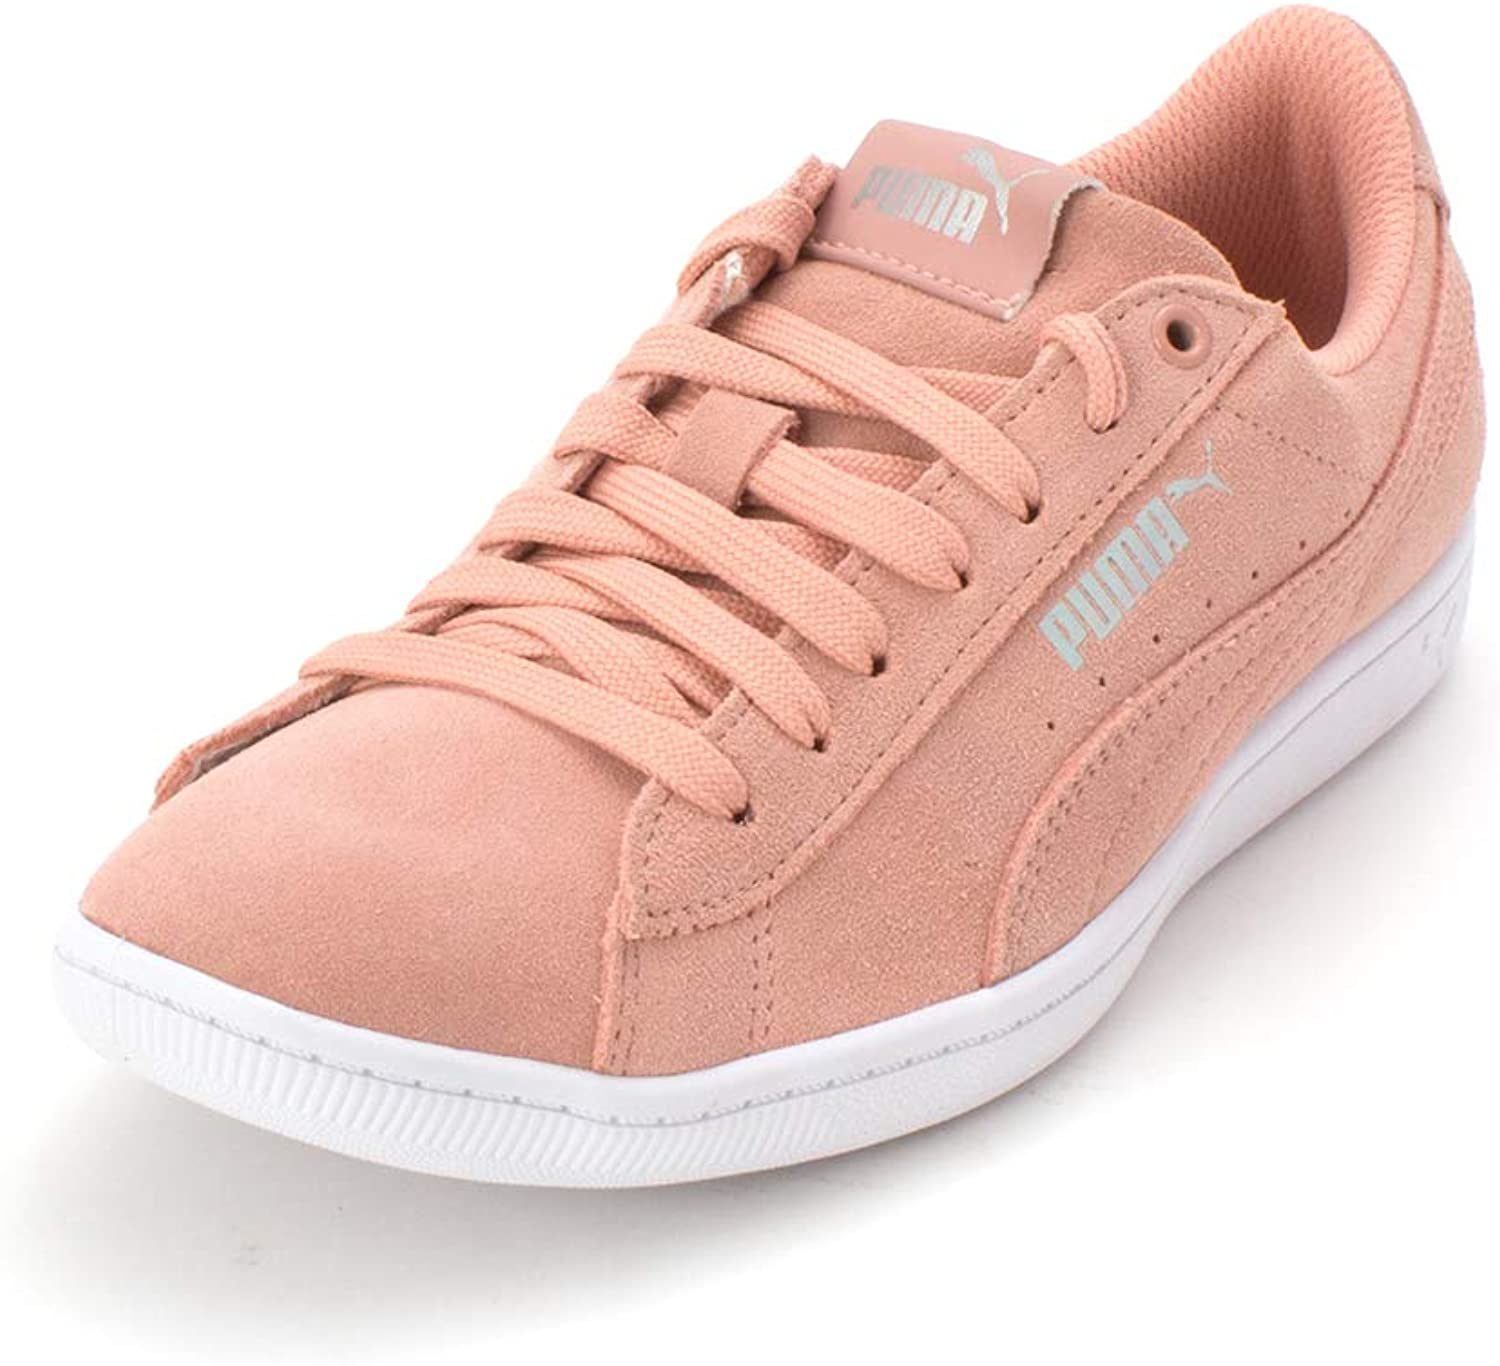 PUMA Womens Vikky Aos Low Top Lace Up Walking shoes